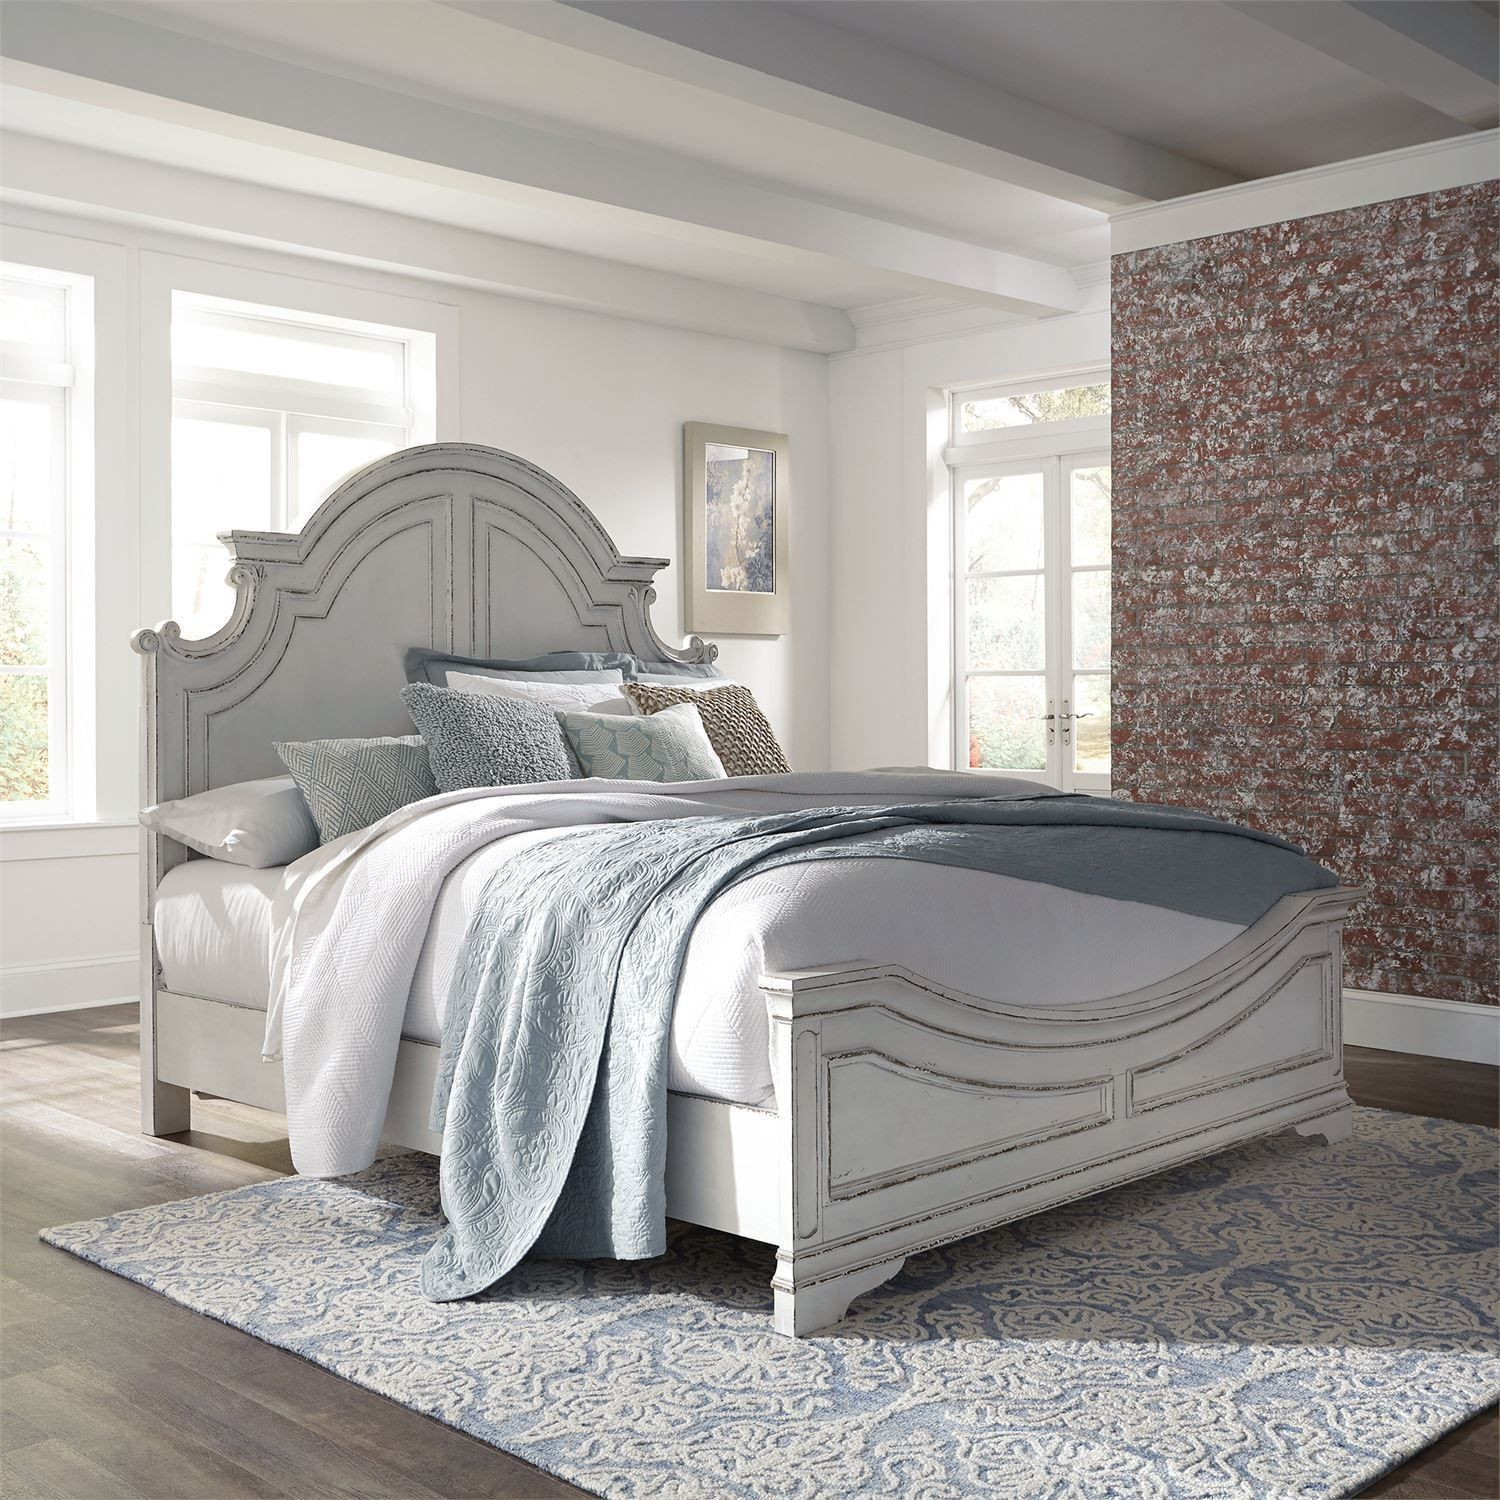 Magnolia Manor Antique White King Panel Bed From Liberty